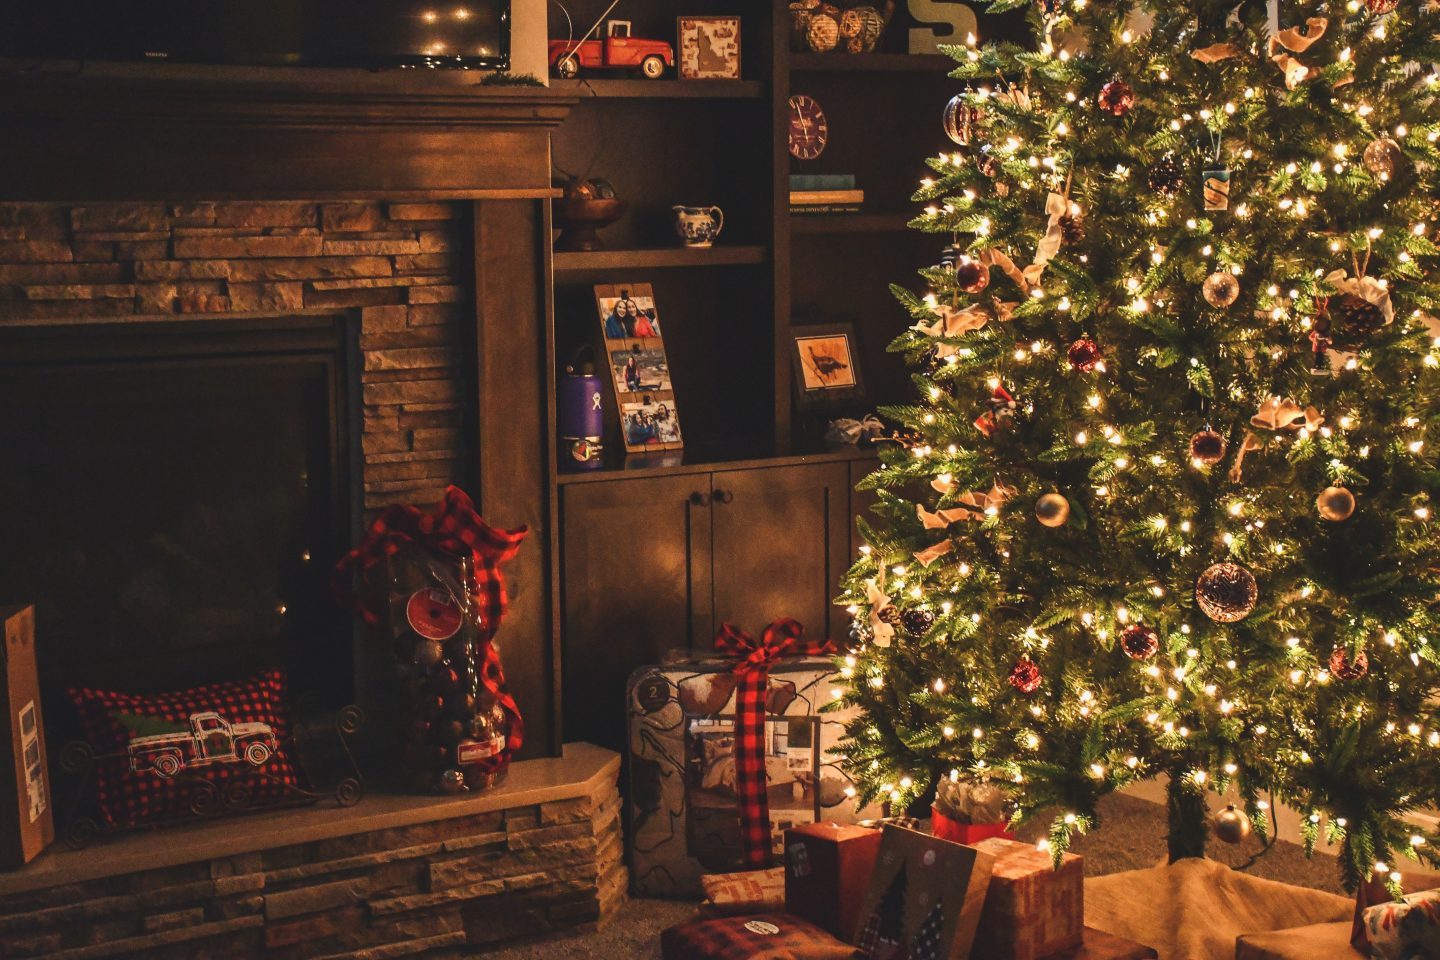 Christmas Tree stock image of a cosy sitting room scene with fireplace and lit tree.